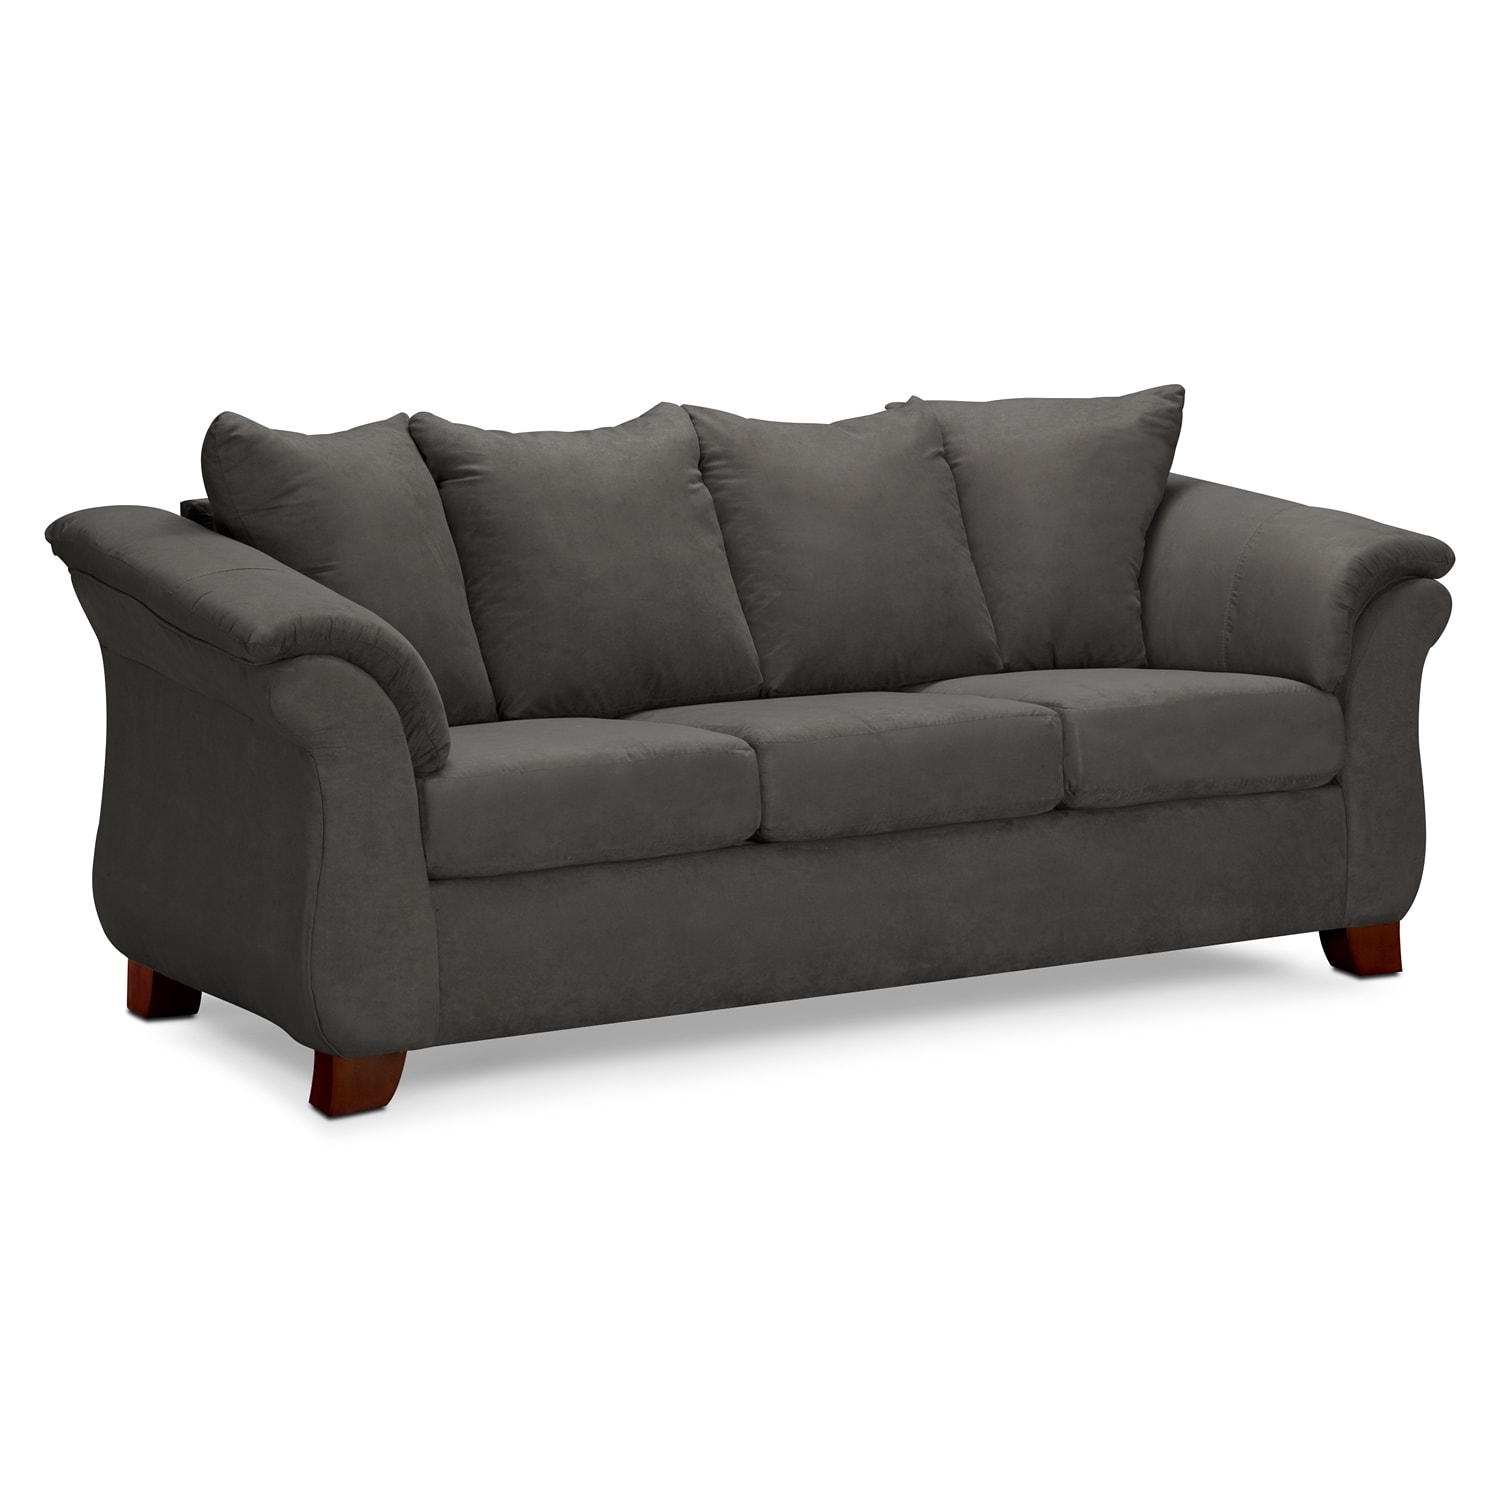 Adrian Sofa Graphite Value City Furniture